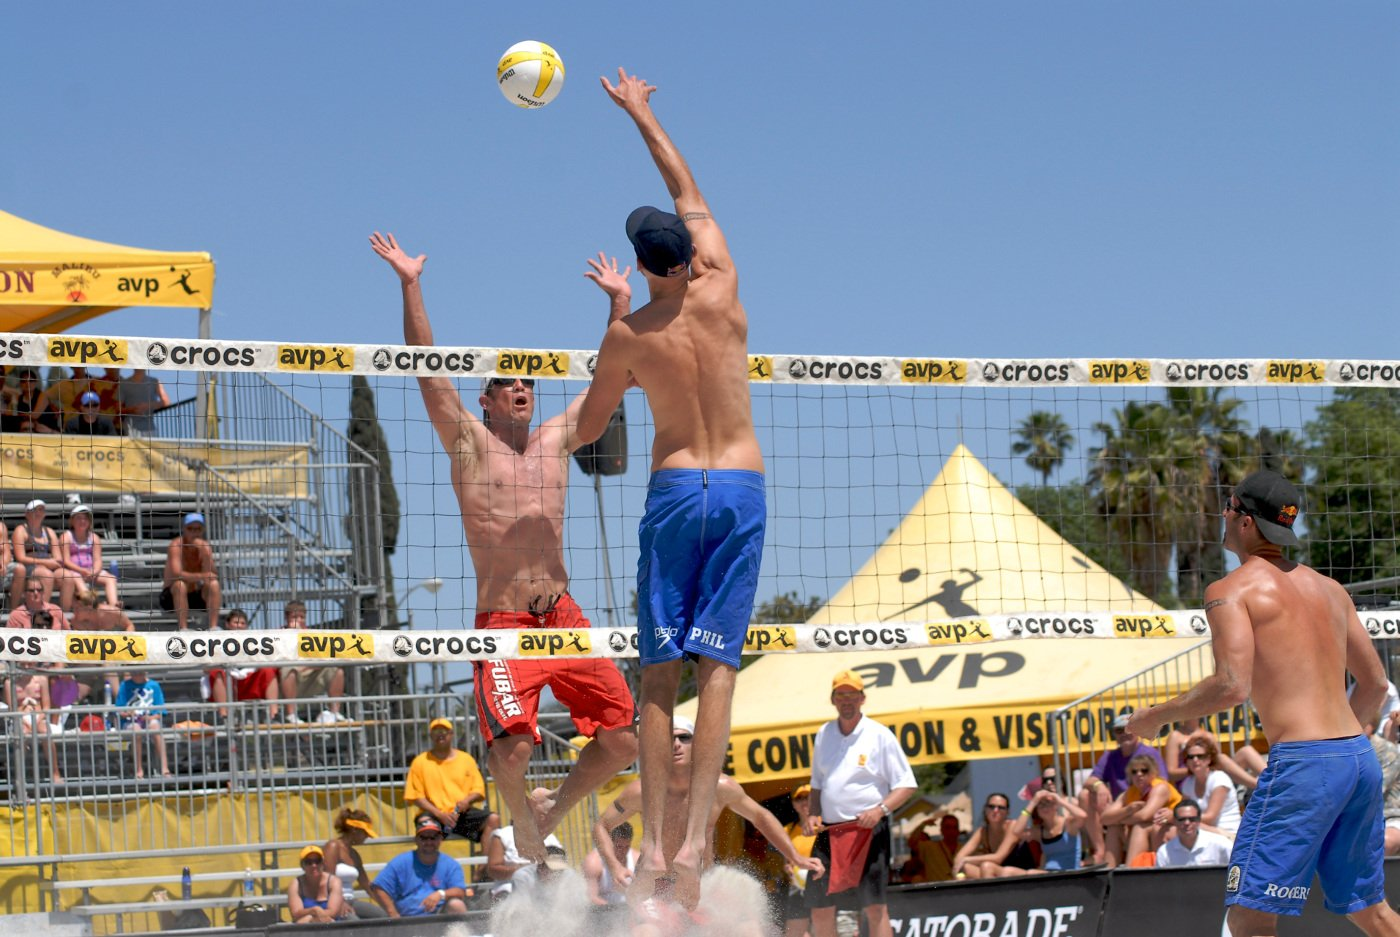 Men playing team volley ball